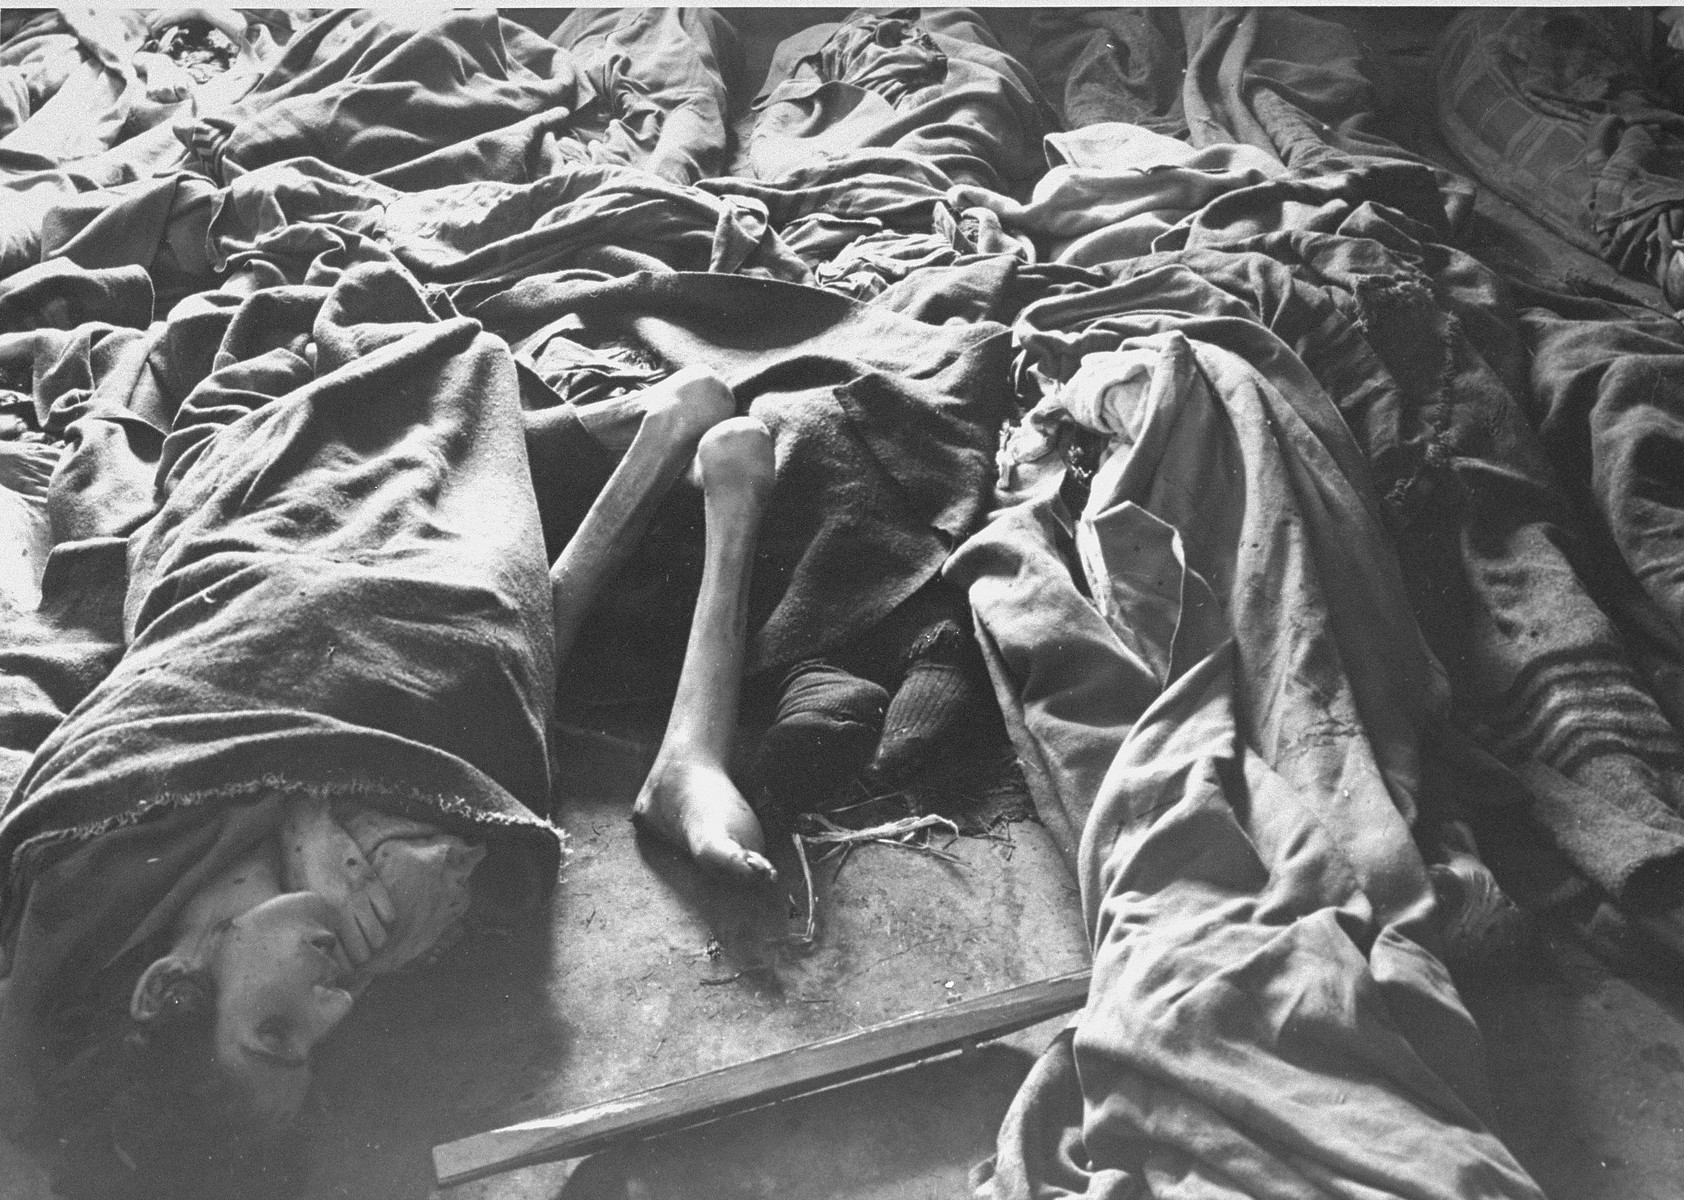 Corpses of women piled up on the floor of Block 11.